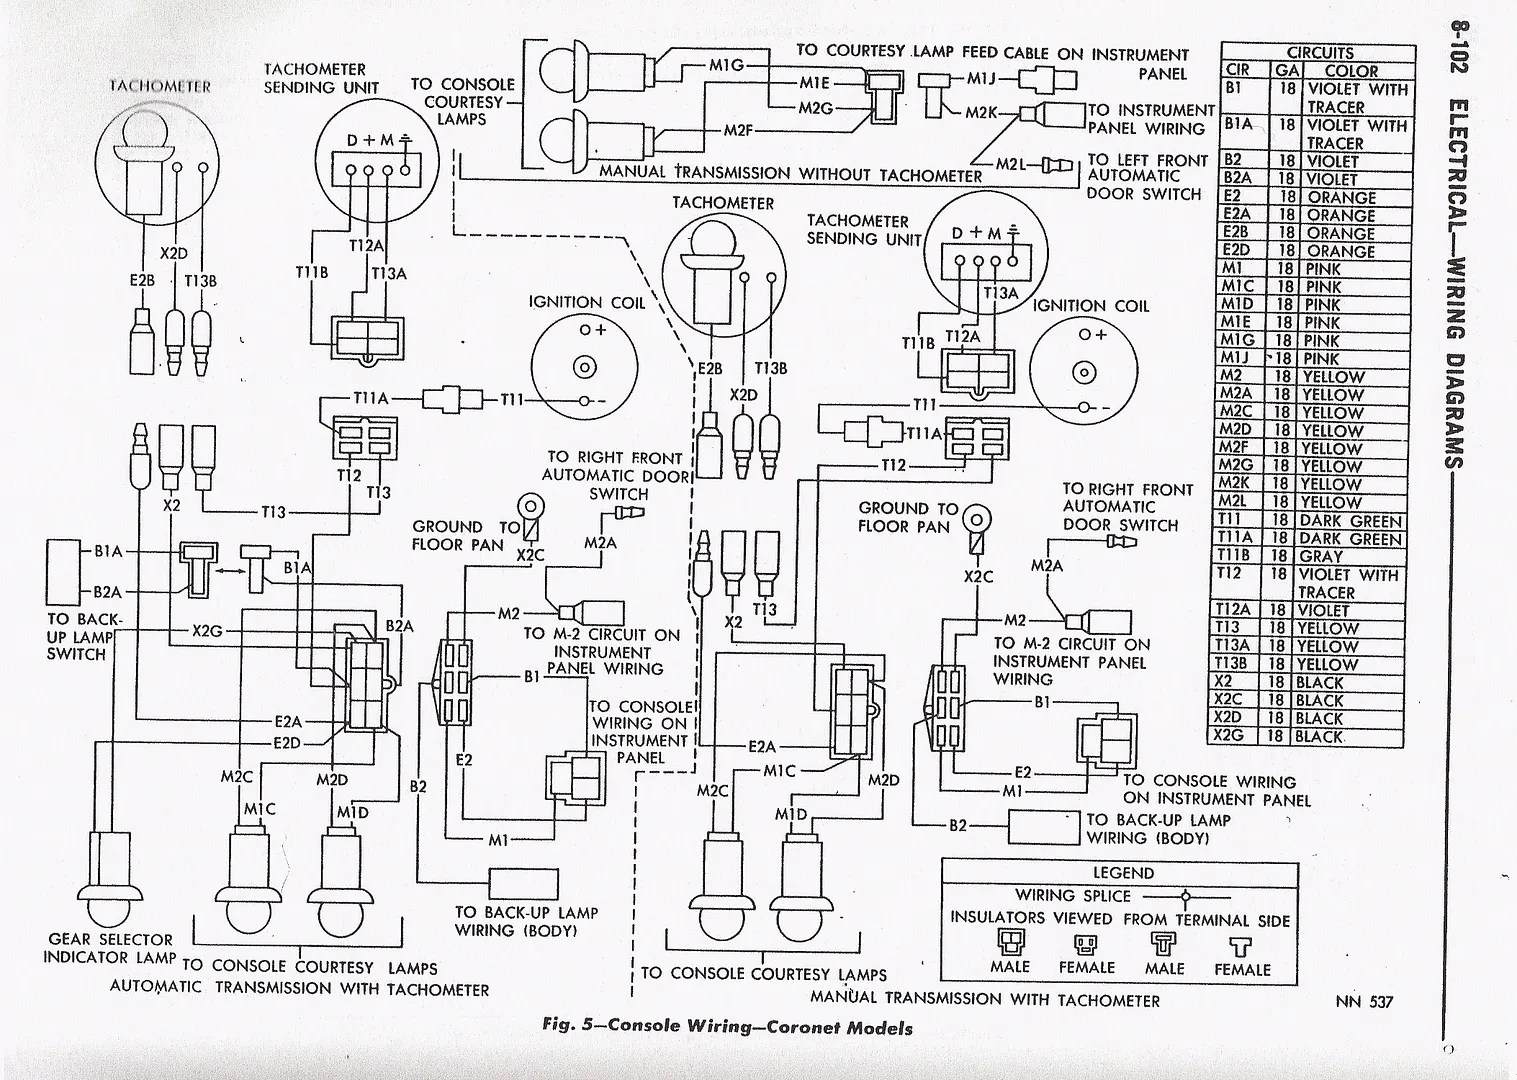 1966 Coronet Floor Console Wiring Diagram With Factory